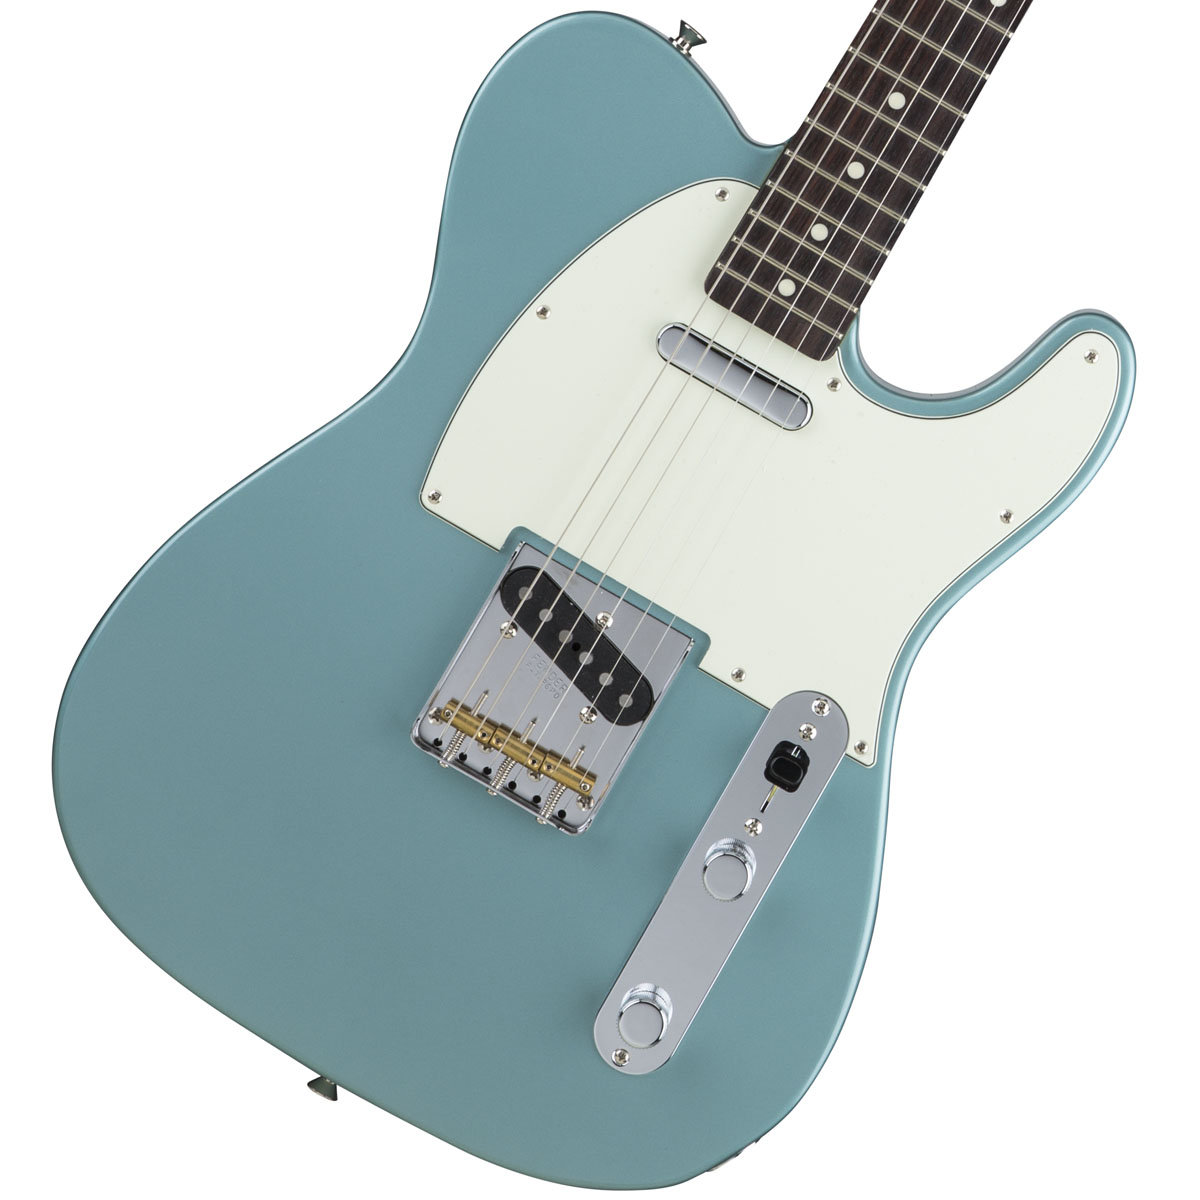 Fender / Made in Japan Hybrid 60s Telecaster Ocean Turquoise Metallic《カスタムショップのお手入れ用品を進呈/+671038200》